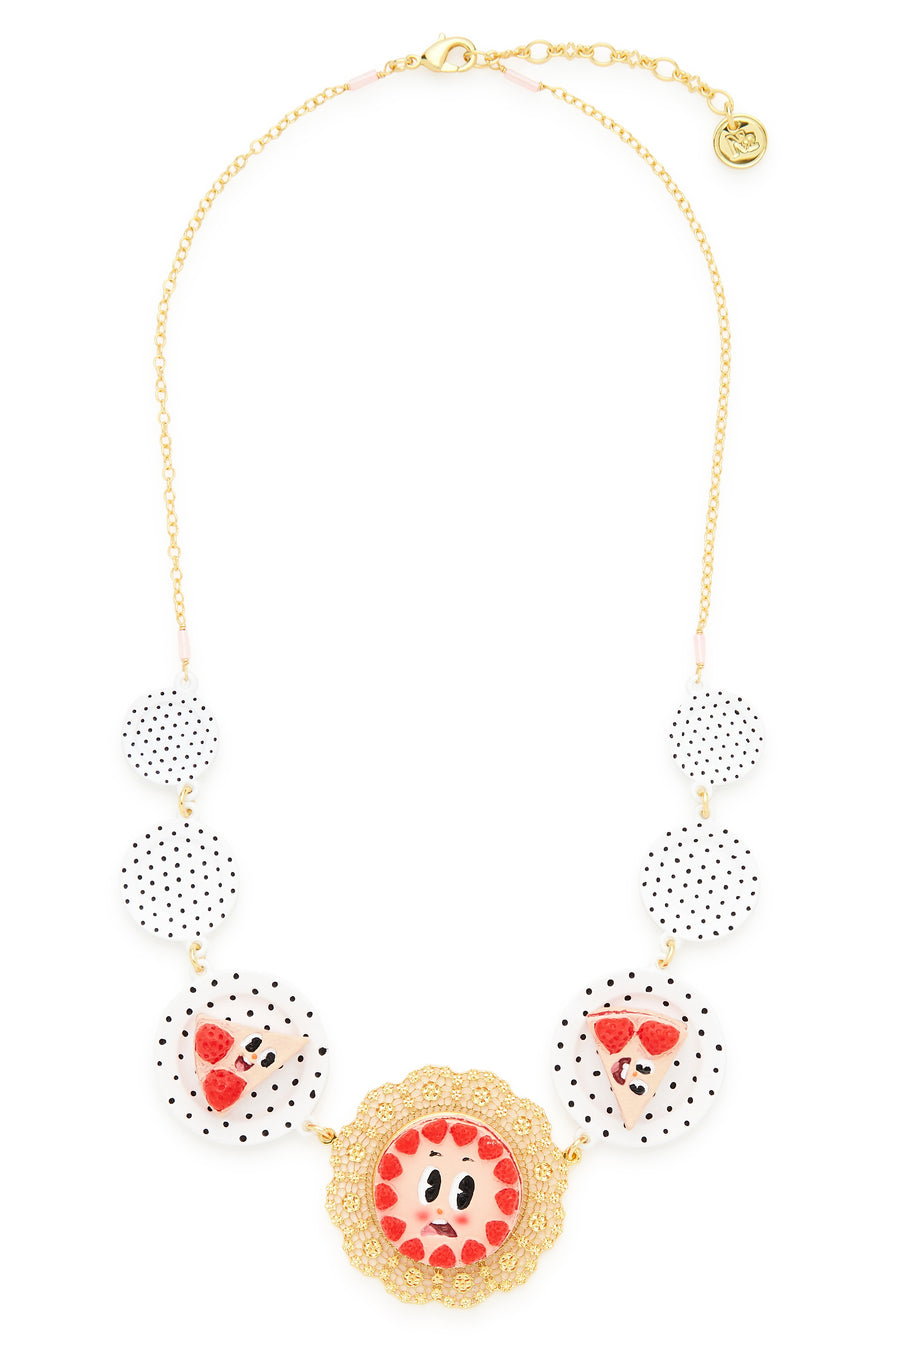 Strawberry Cake and Plates Necklace